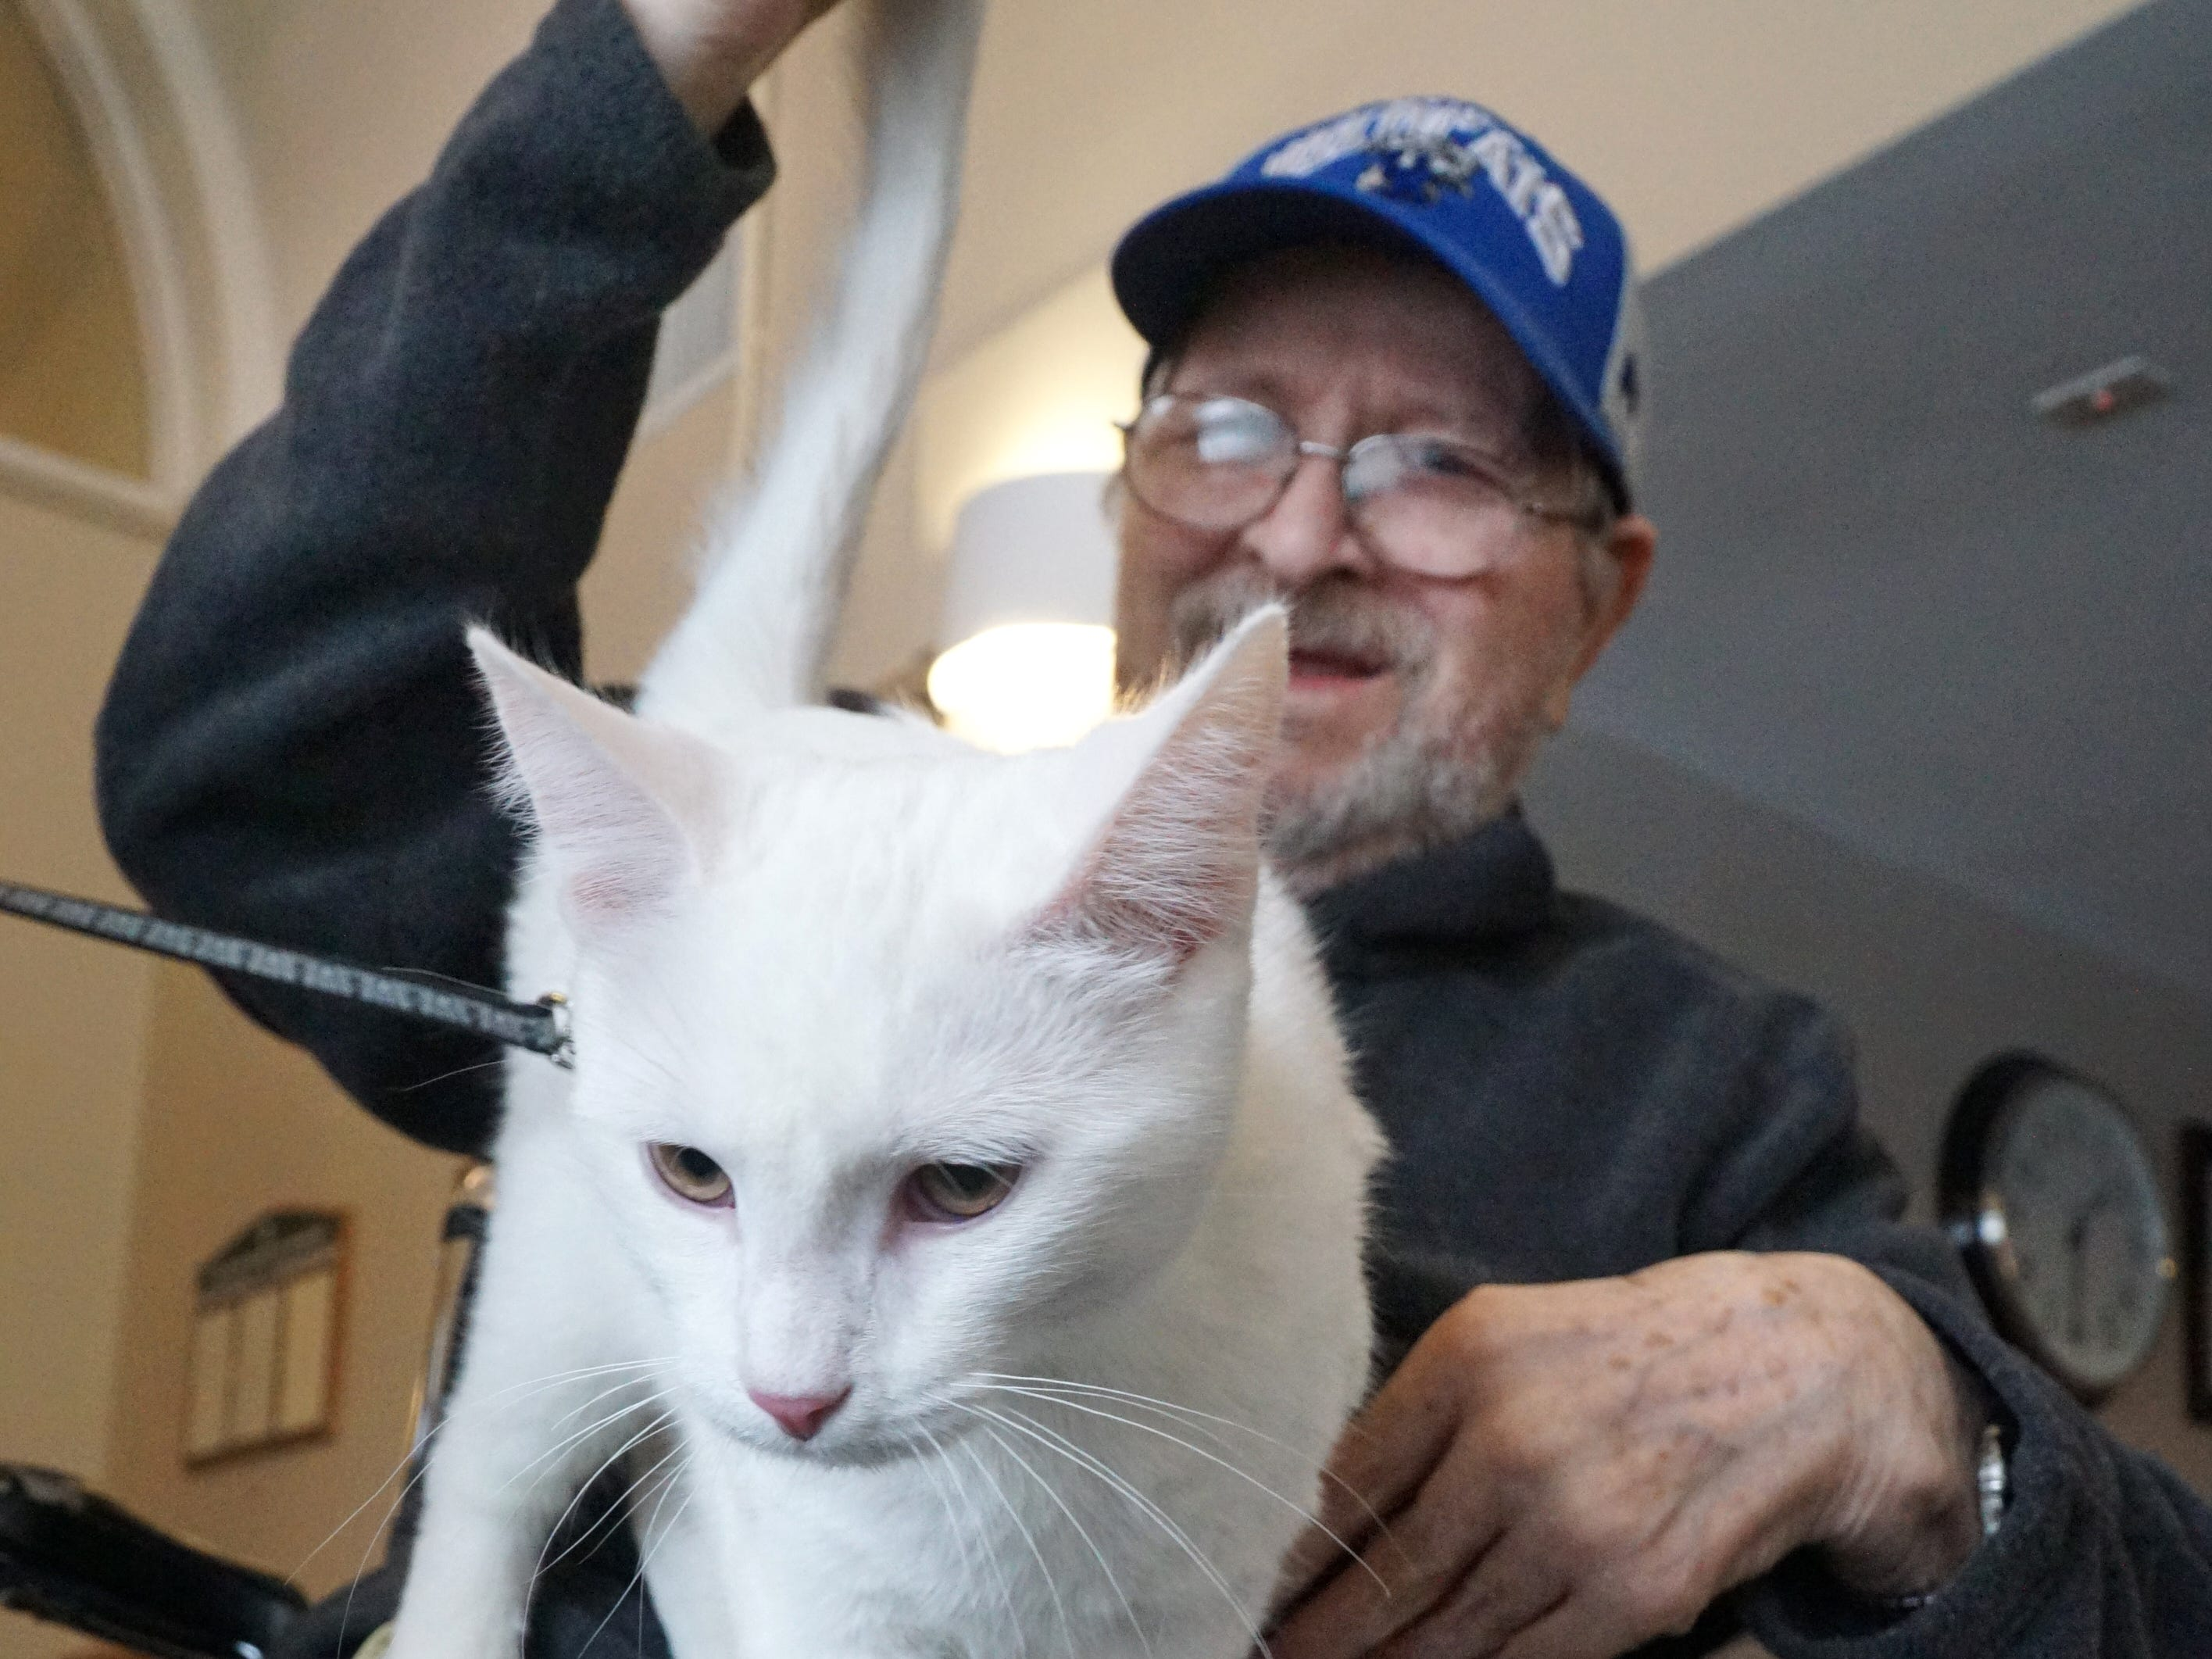 South Lyon Senior Care and Rehab resident John Finkbiner pets a cat at the facility on Feb. 16.